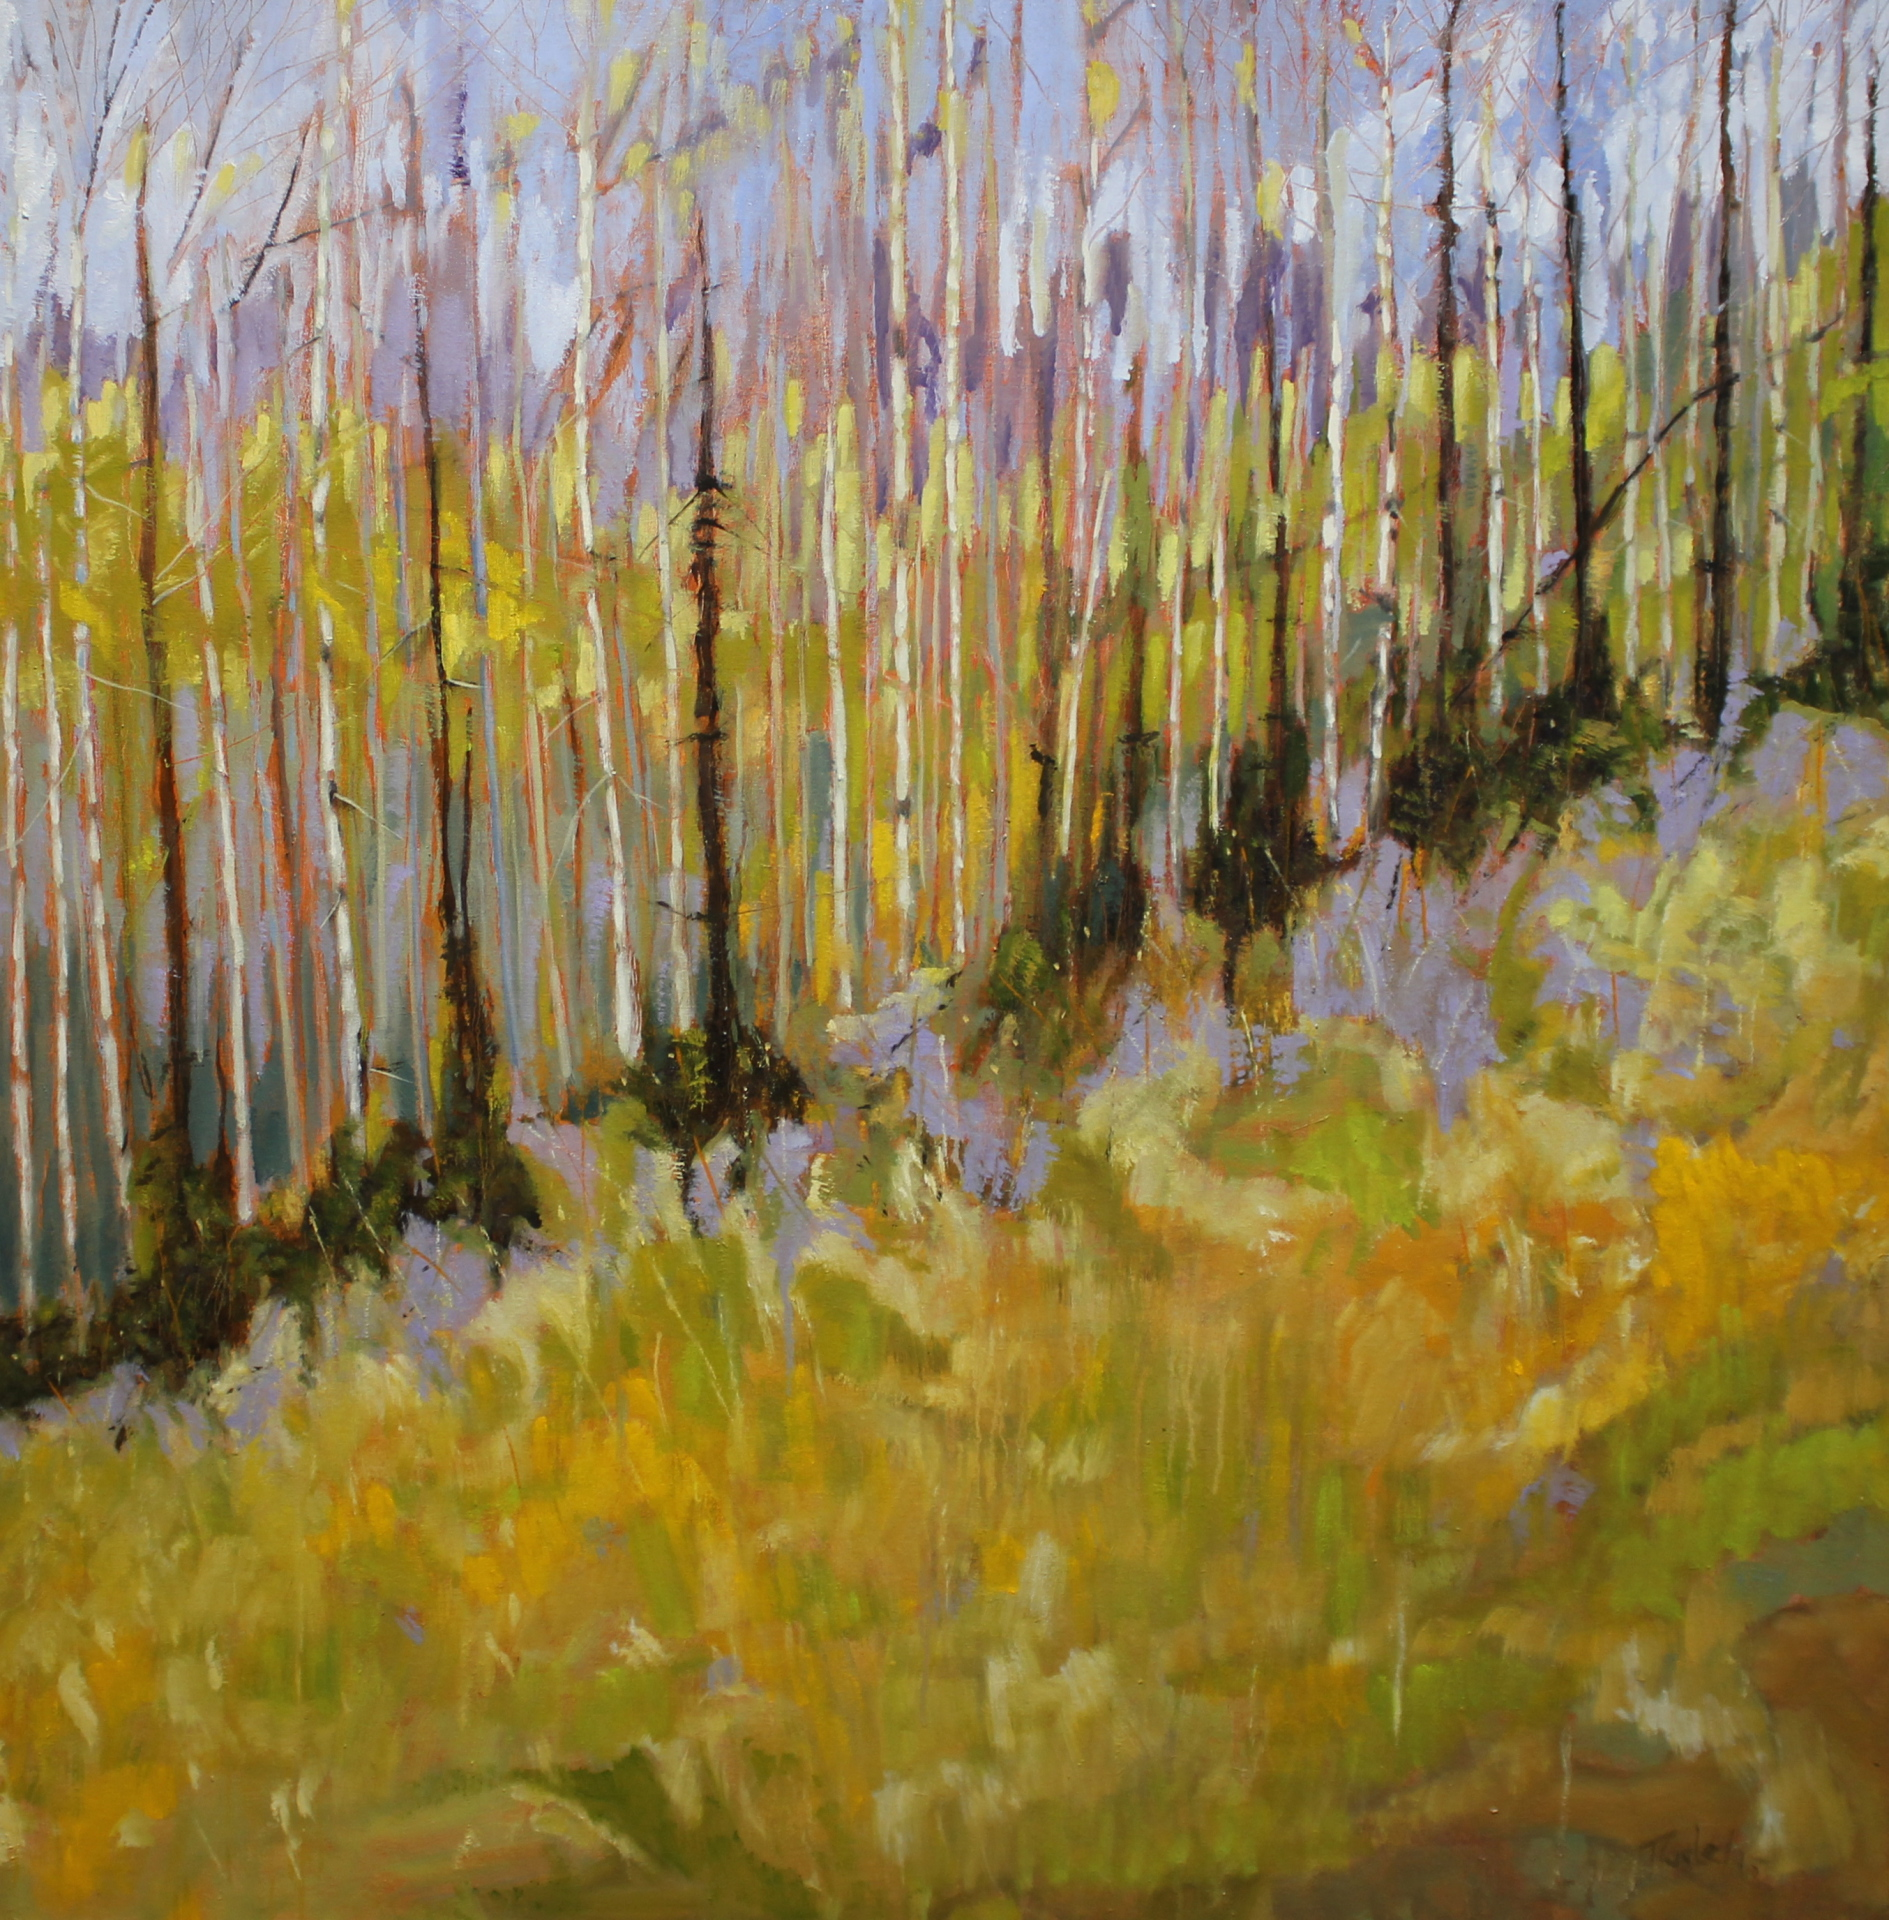 SPRINGS ETERNAL - 48X48 - OIL ON CANVAS - 2015